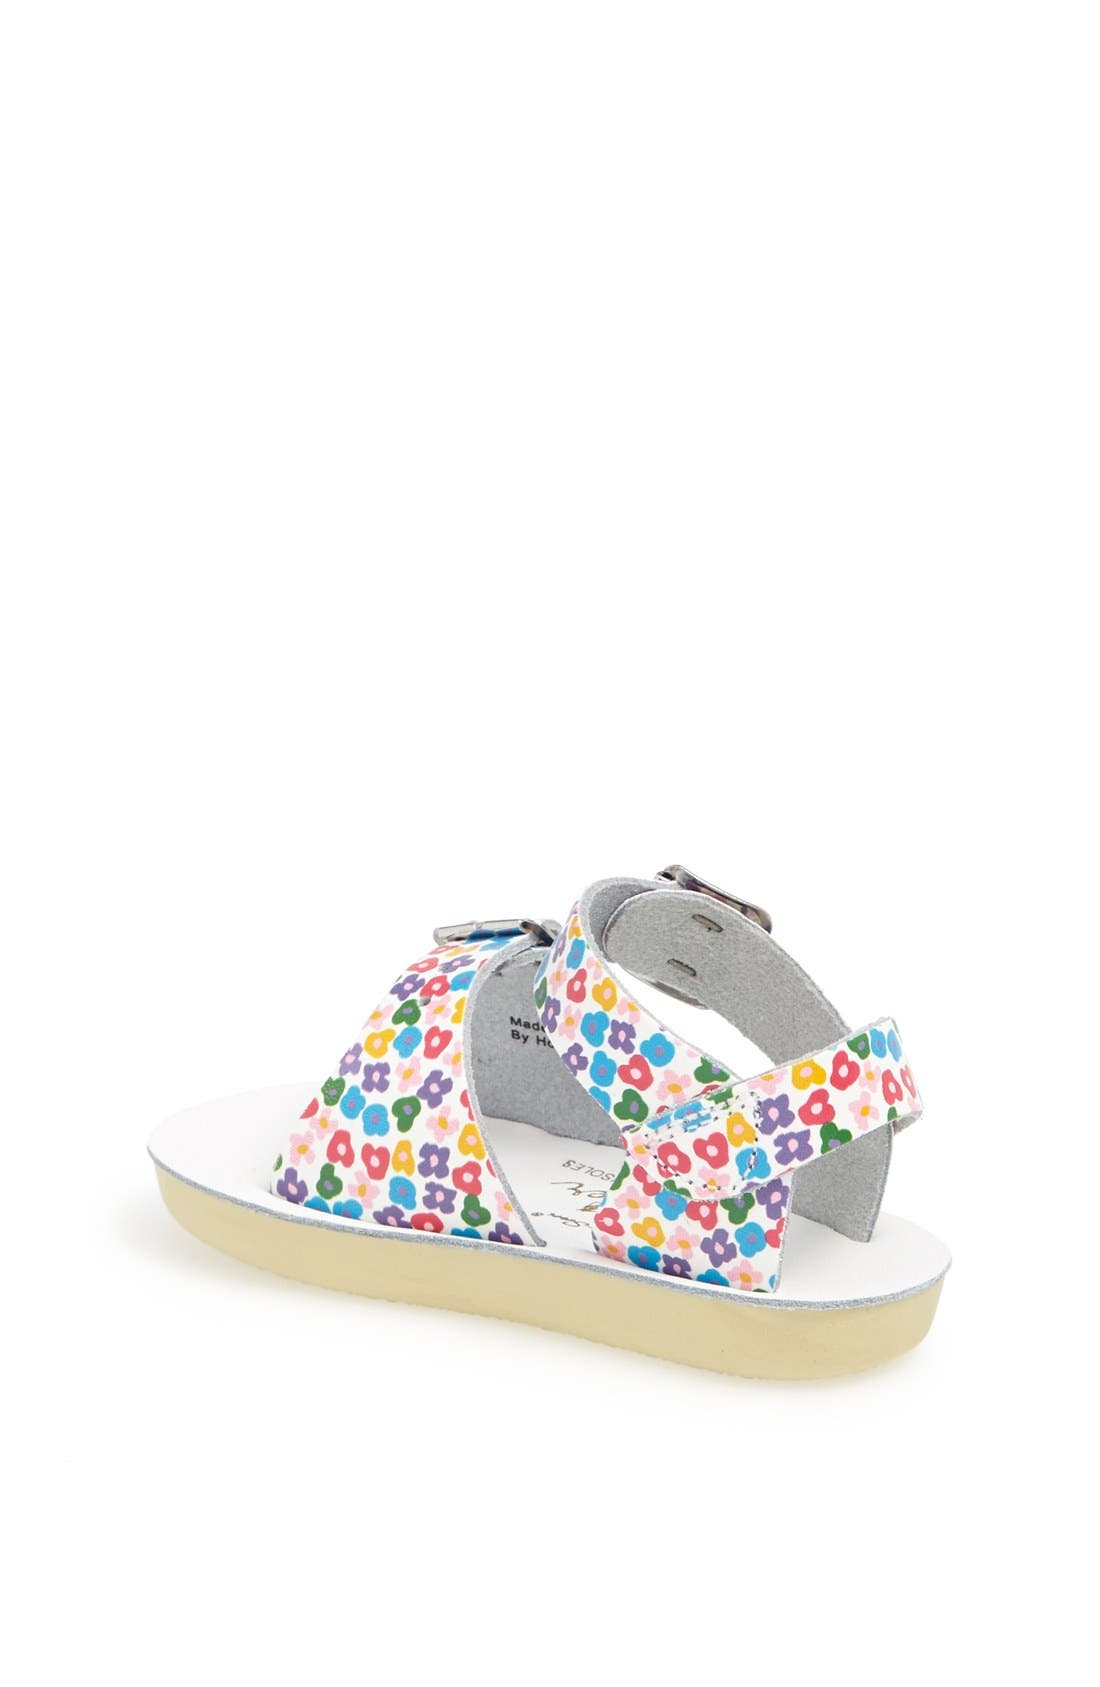 Hoy Shoe Salt-Water<sup>®</sup> Sandals 'Surfer' Sandal,                             Alternate thumbnail 2, color,                             Floral